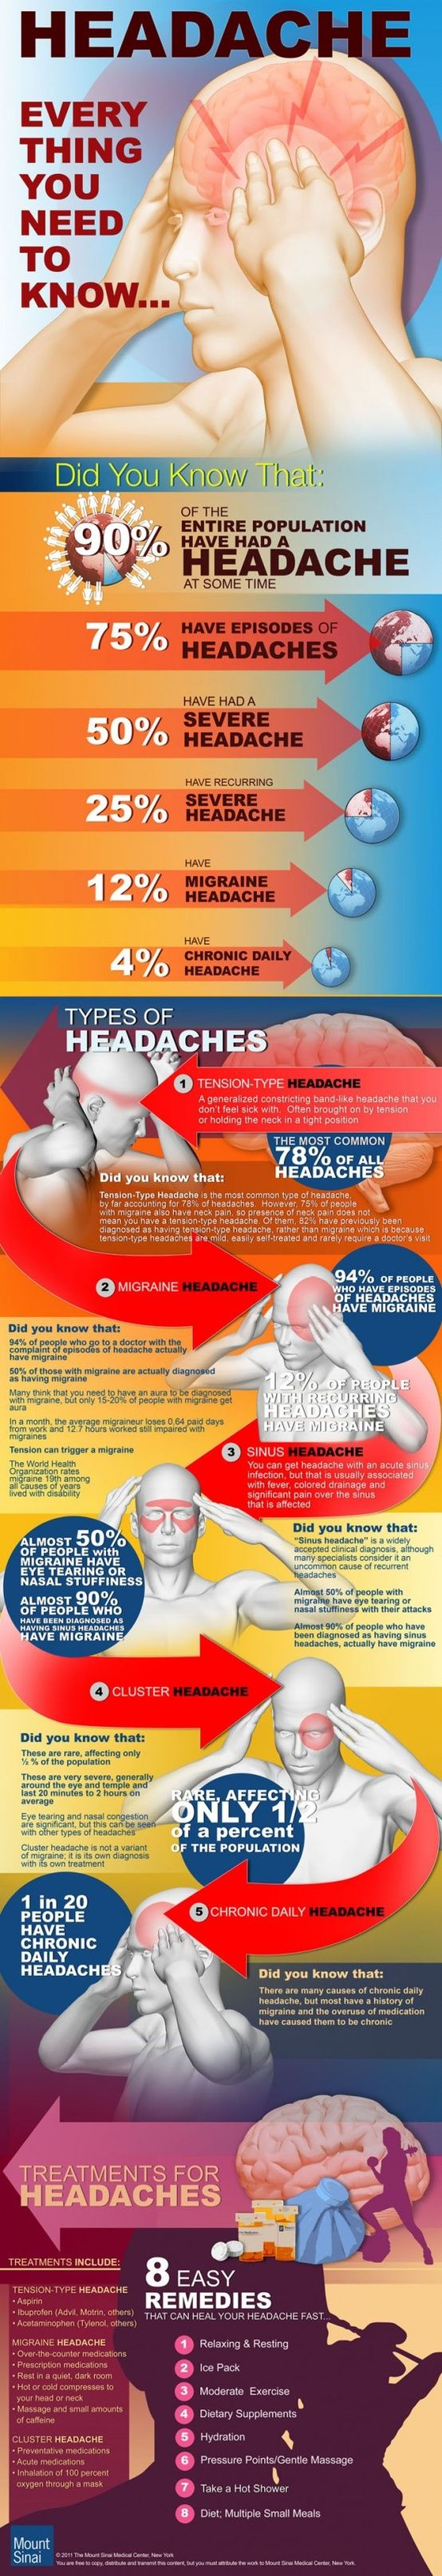 Everything you need to know about headaches